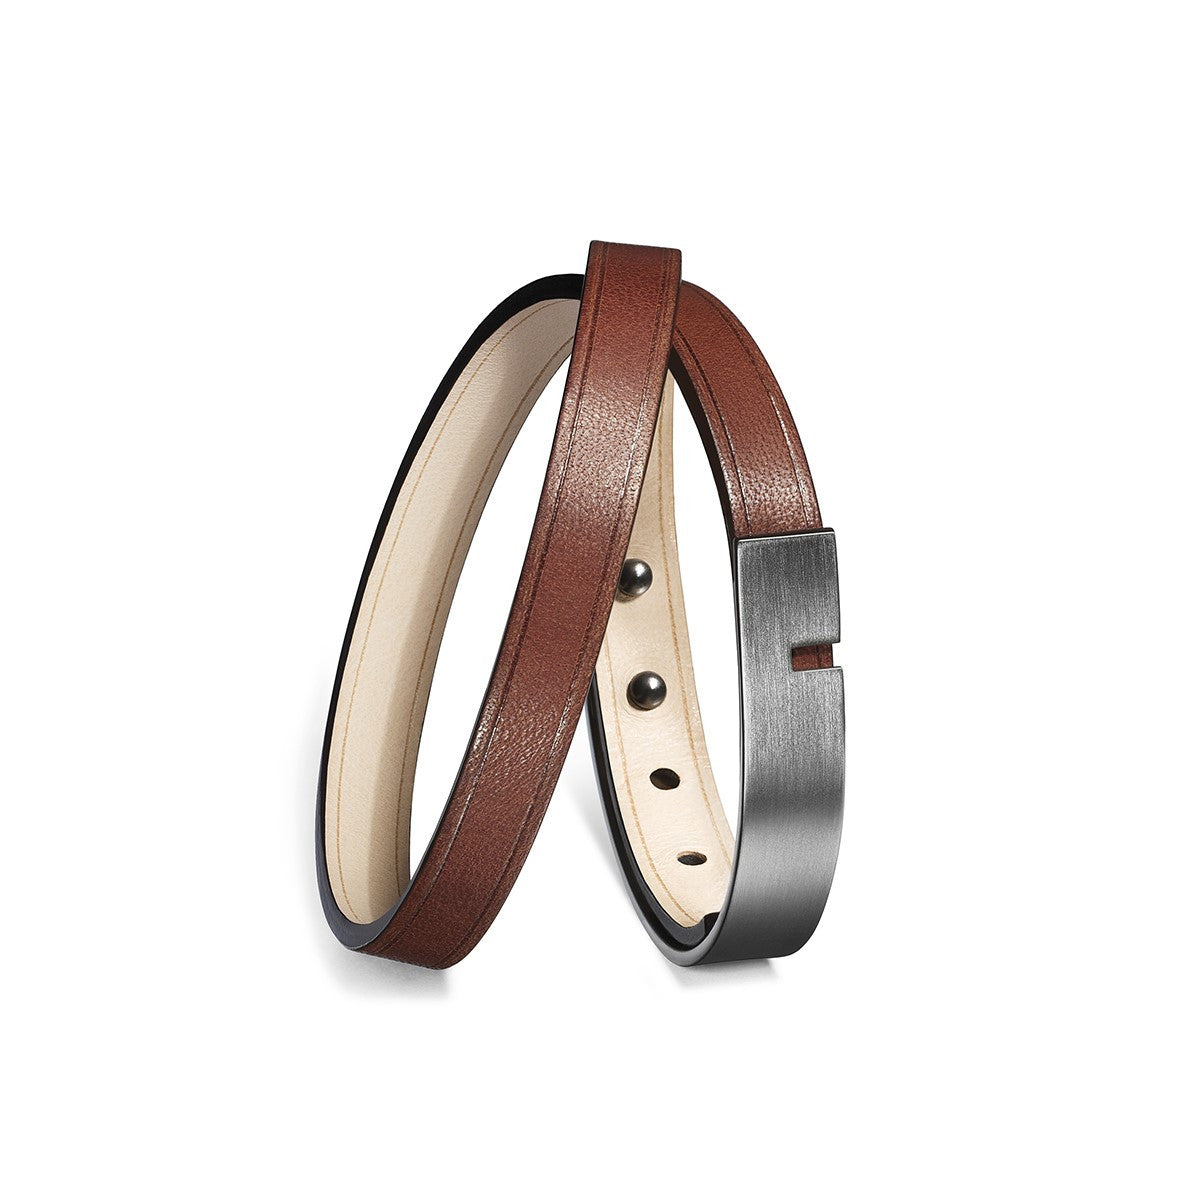 U-Turn Twice - Tawny Leather Bracelet and Steel Gun clasp